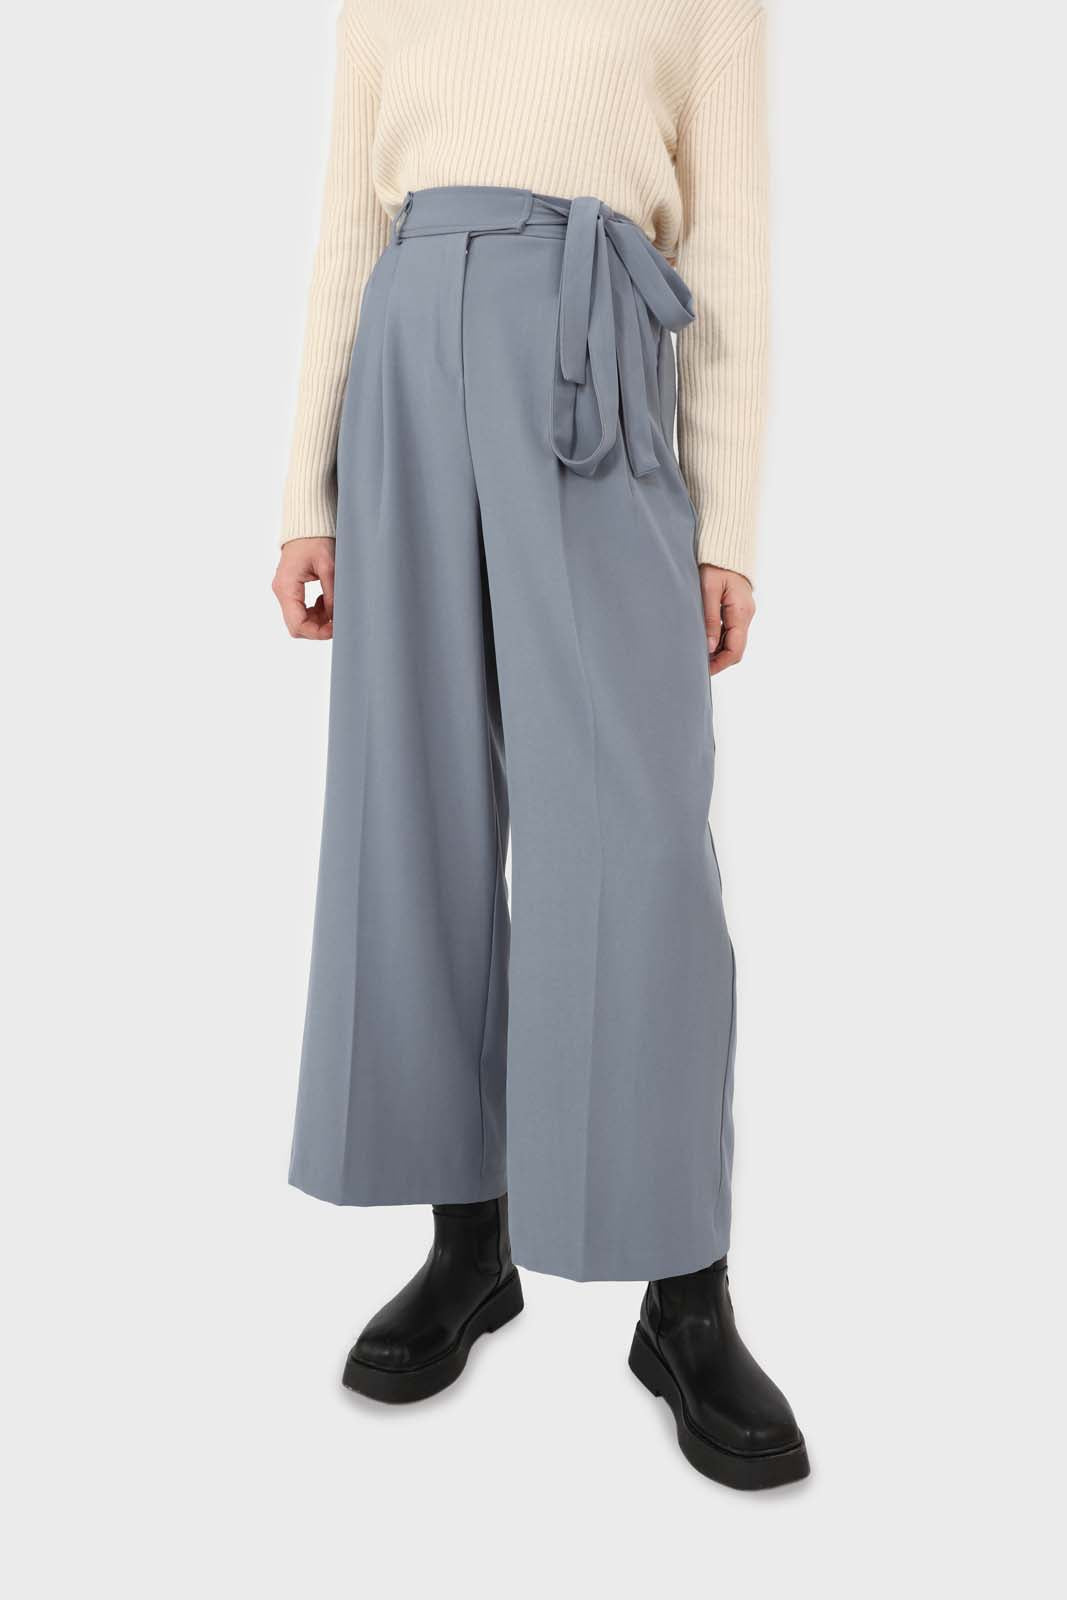 Blue soft belted loose fit trousers1sx